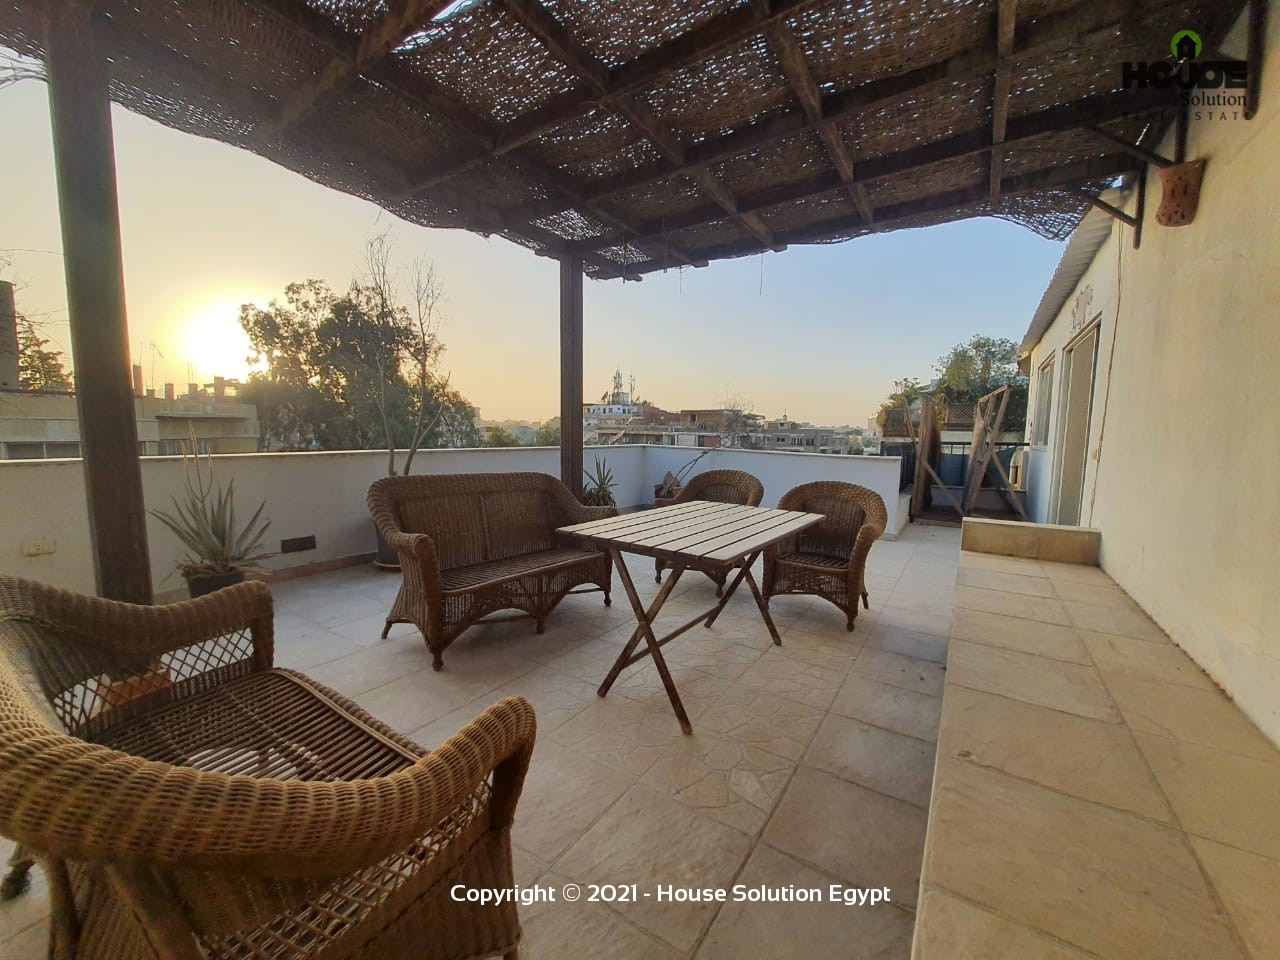 Wonderful Penthouse For Rent With Large Terrace Located In Degla El Maadi  - 4945 Featured Image